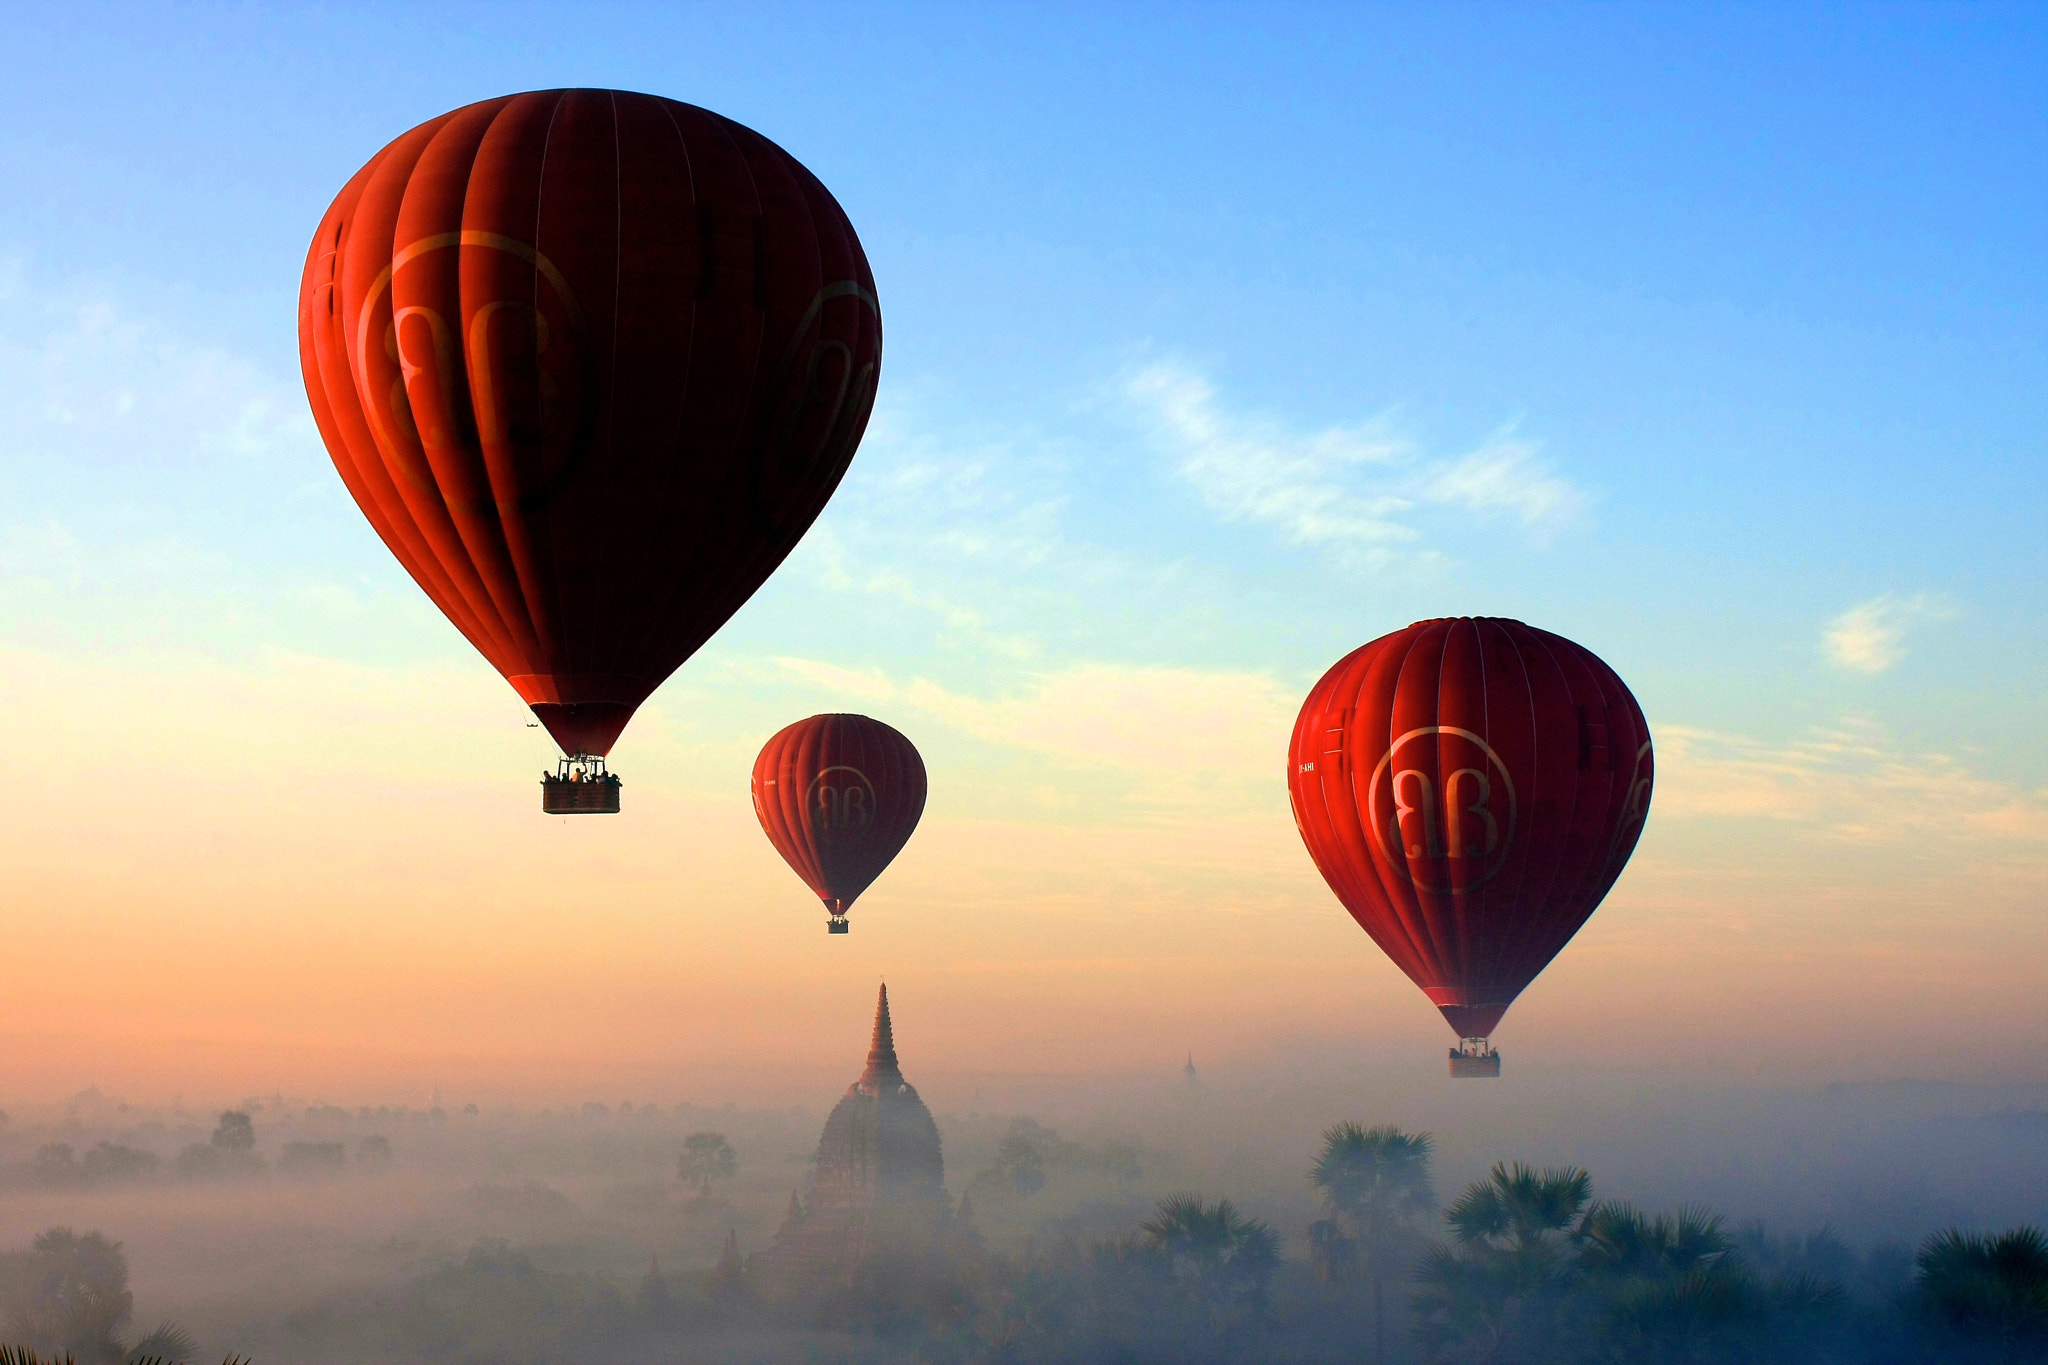 Photograph Balloons Over Bagan by Chi Kit Yeung on 500px